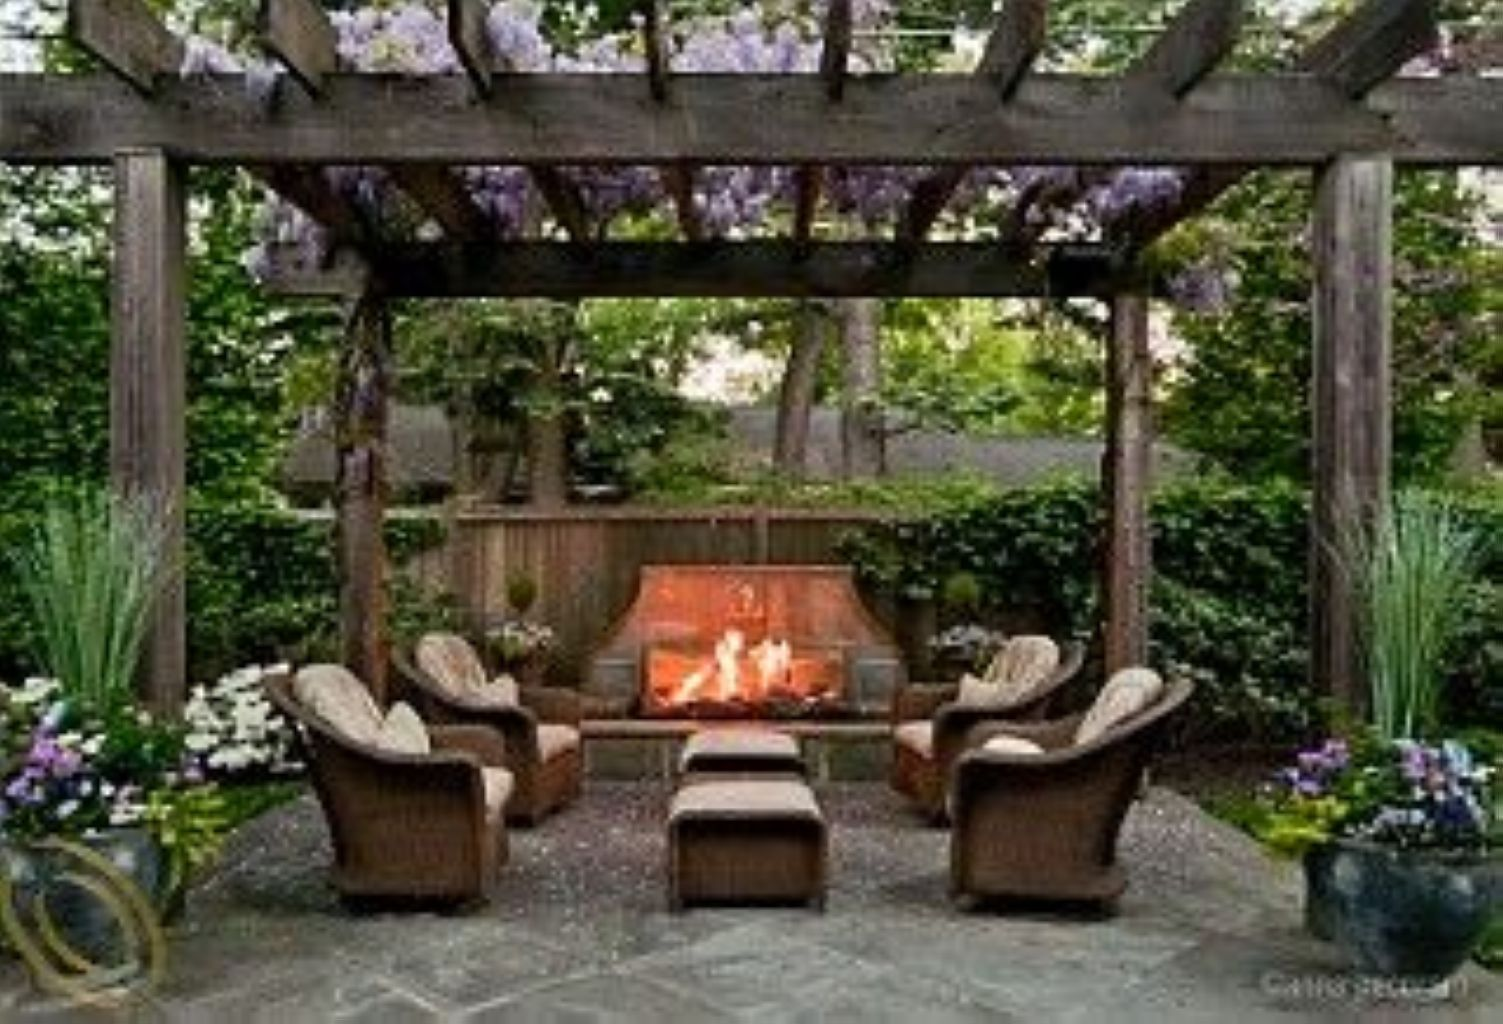 55 Beautiful Small Space Ideas for Gardens